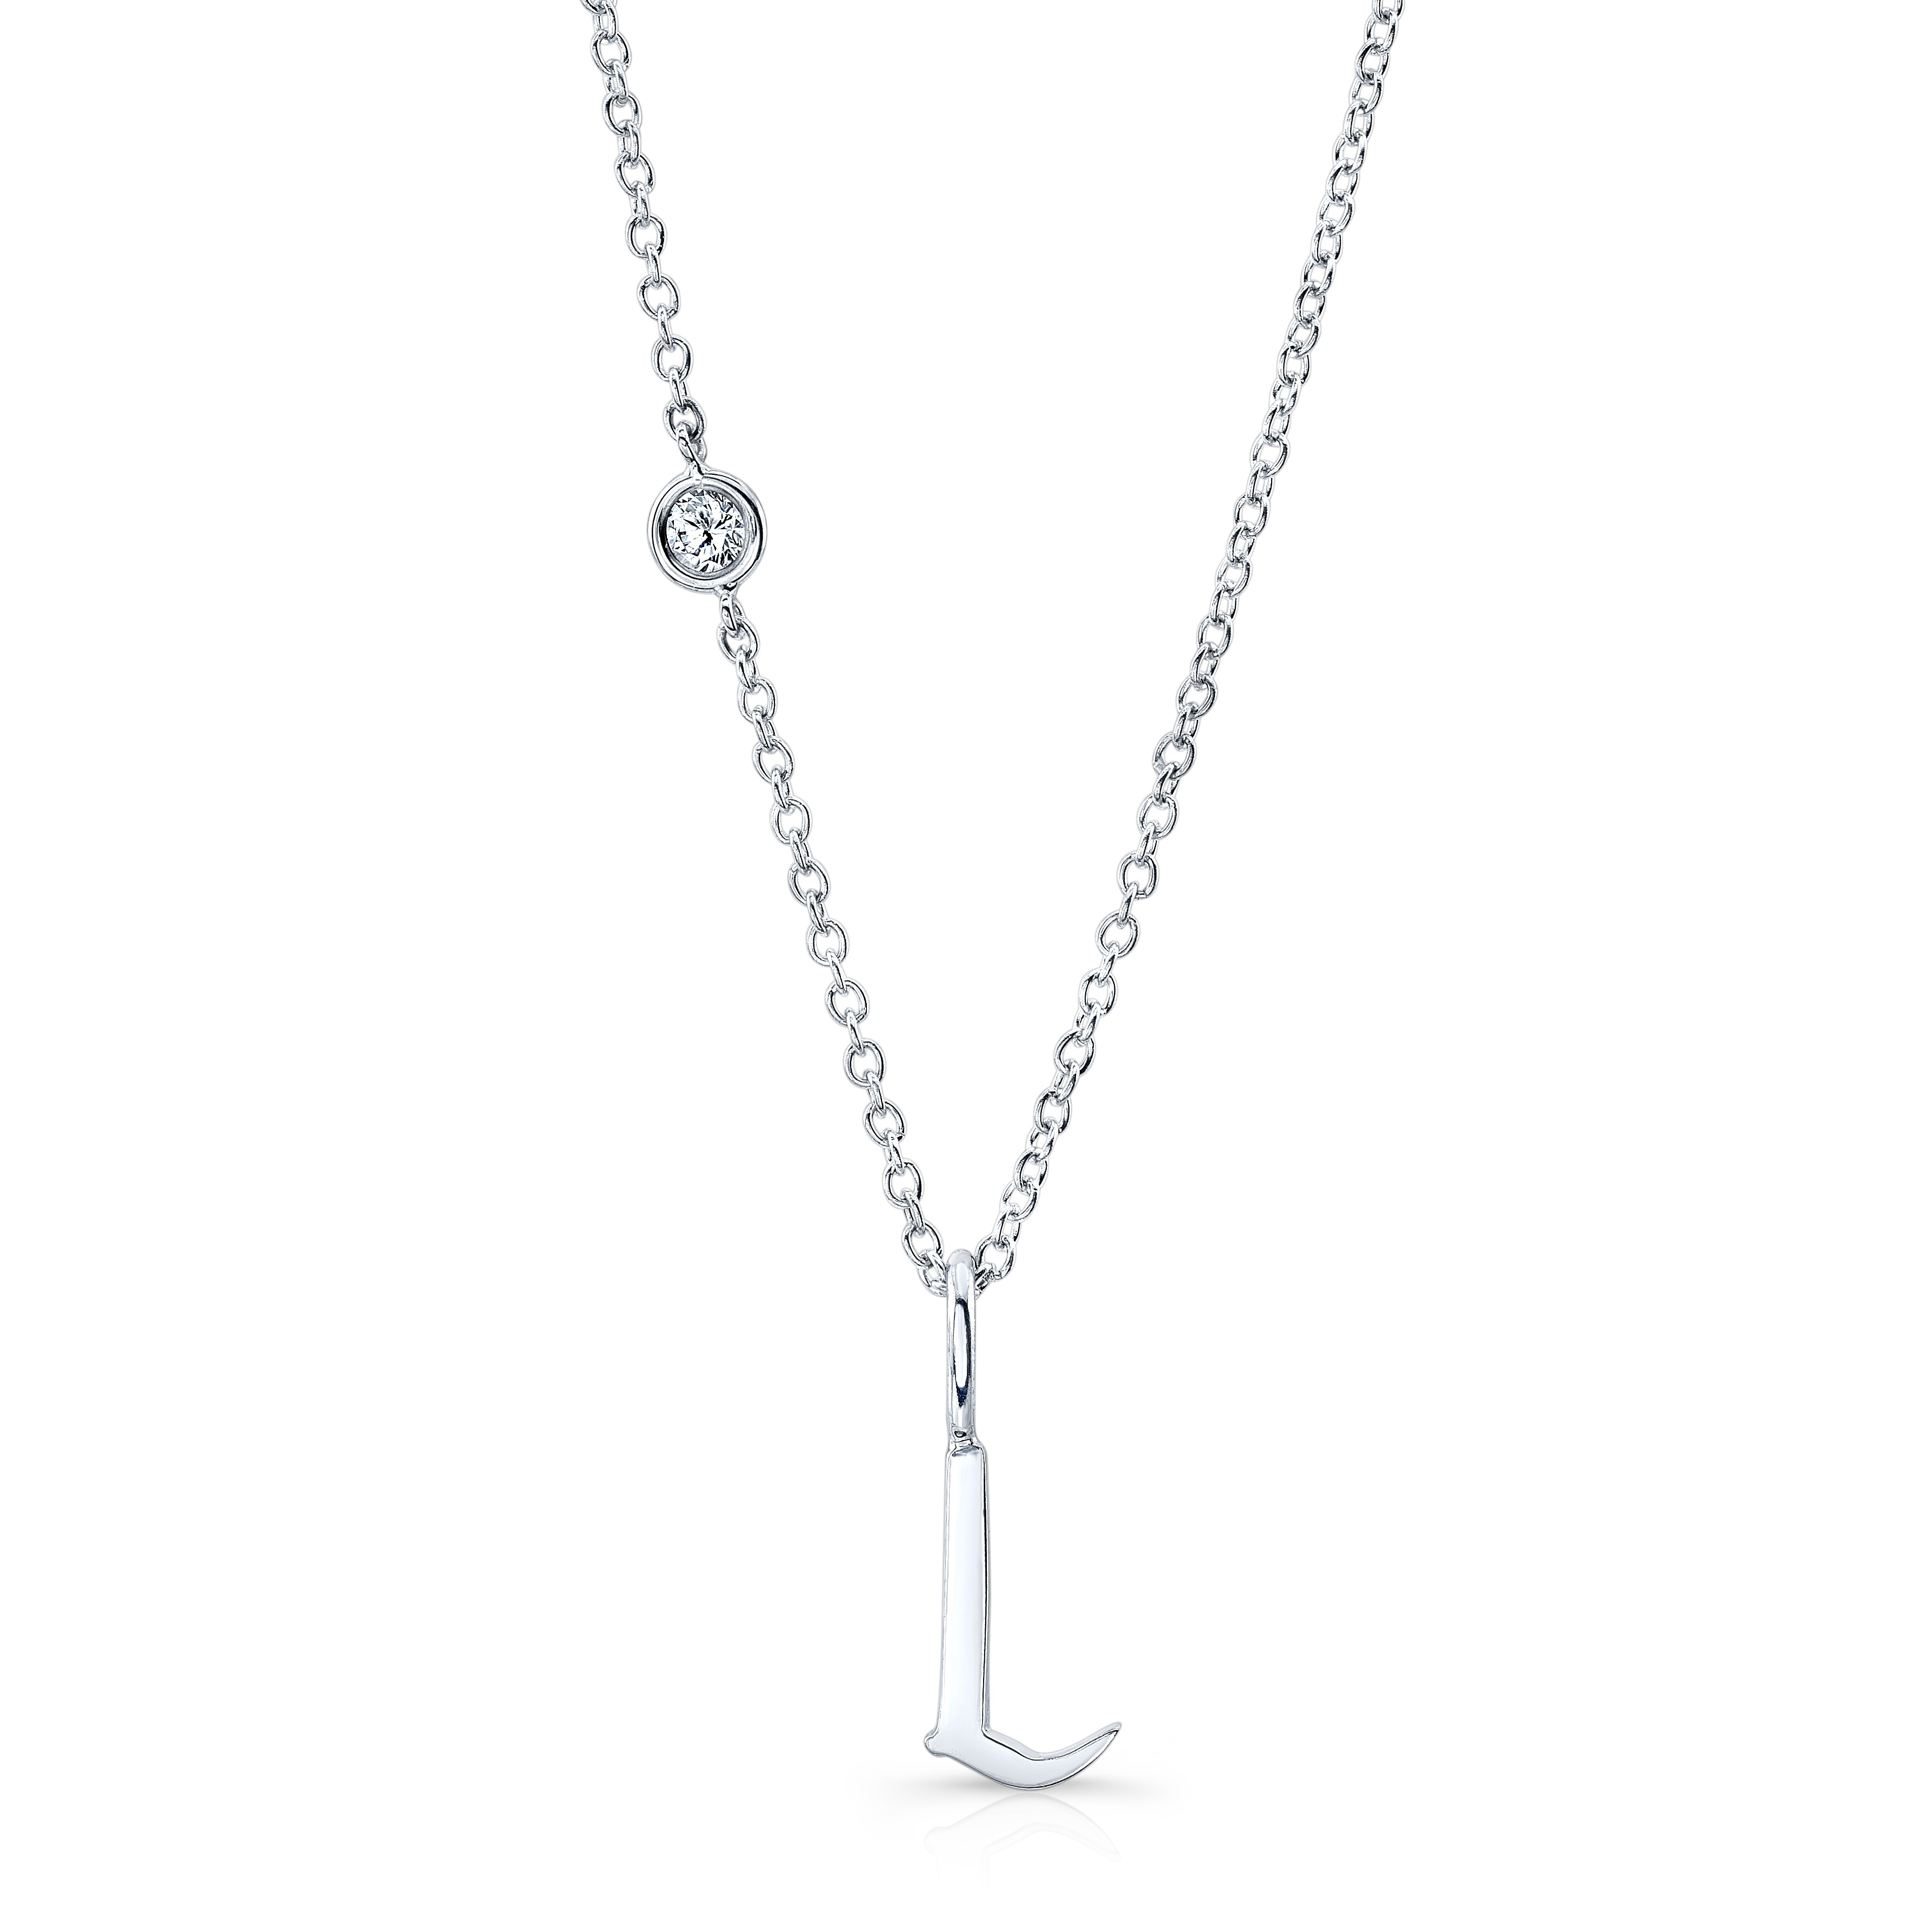 Original ALPHABET Necklace with Diamond in 18K White Gold